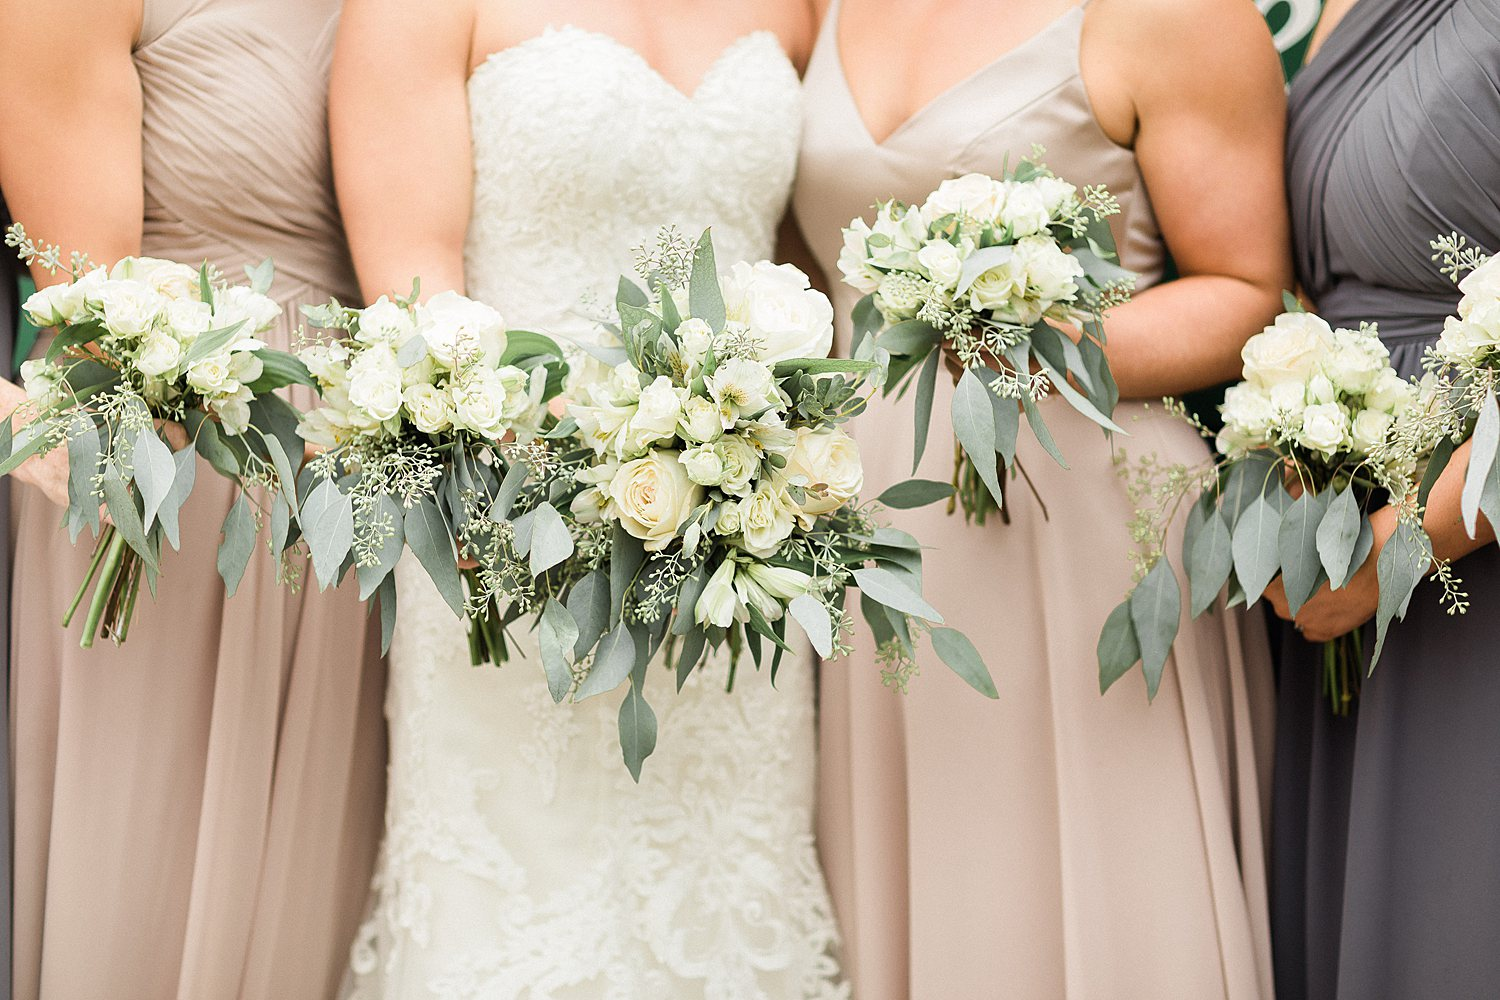 North_Central_Wisconsin_Event_Wedding_Venues_Fall_Weddings_The_Bailiwick_Venue_James-Stokes-Photography040.jpg